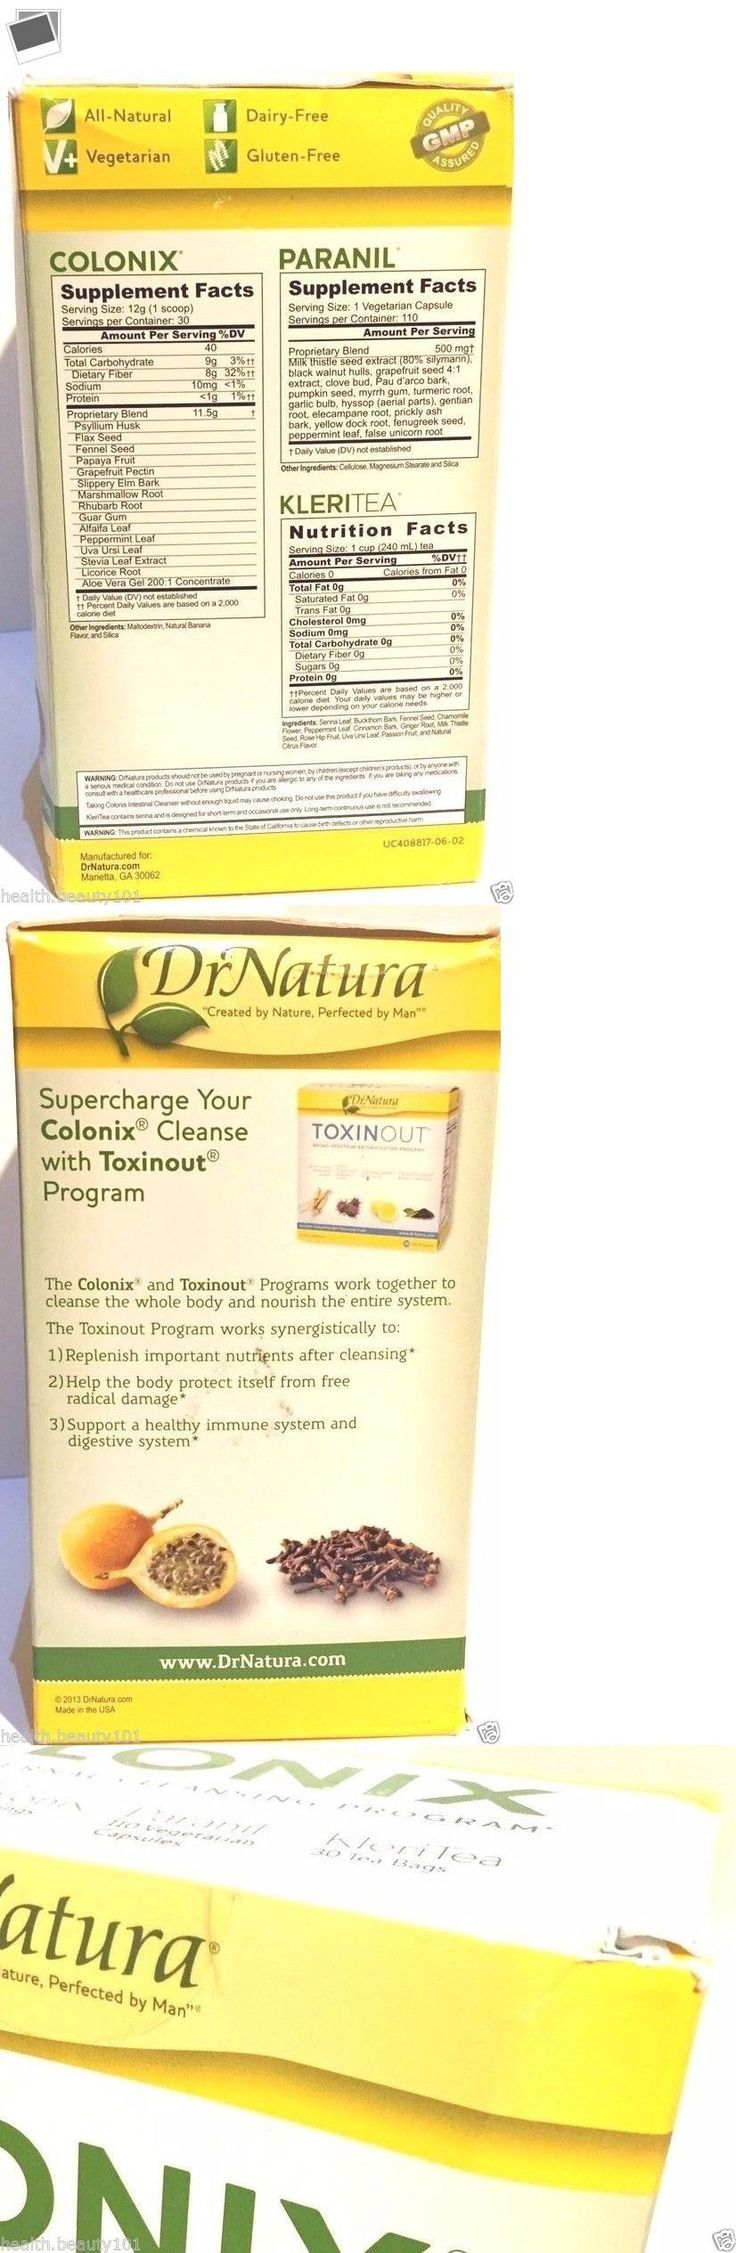 Detox and Cleansers: Dr. Natura Colonix Colon Cleanse 30 Day Program Natural Liver Detox 02-28-18 Exp -> BUY IT NOW ONLY: $85 on eBay! #LiverDetoxProgram